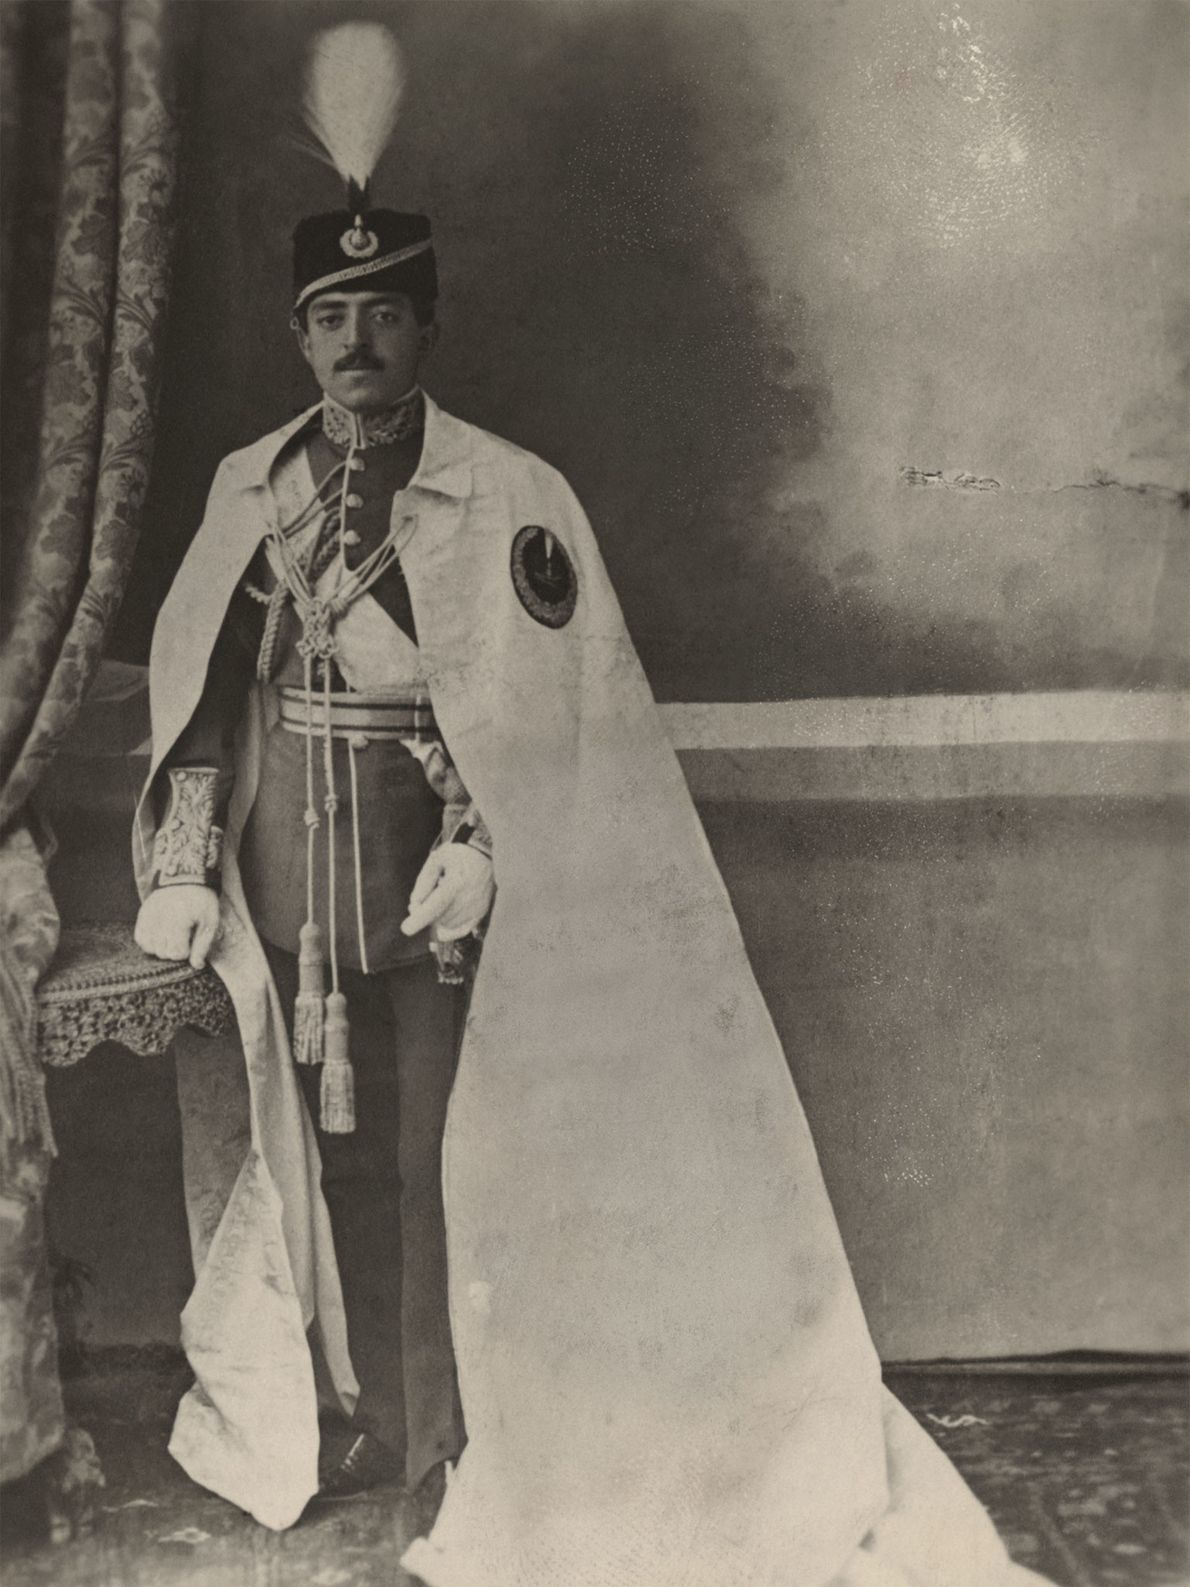 Amanullah Khan, the sovereign ruler of the kingdom of Afghanistan from 1919 to 1929, is pictured ...